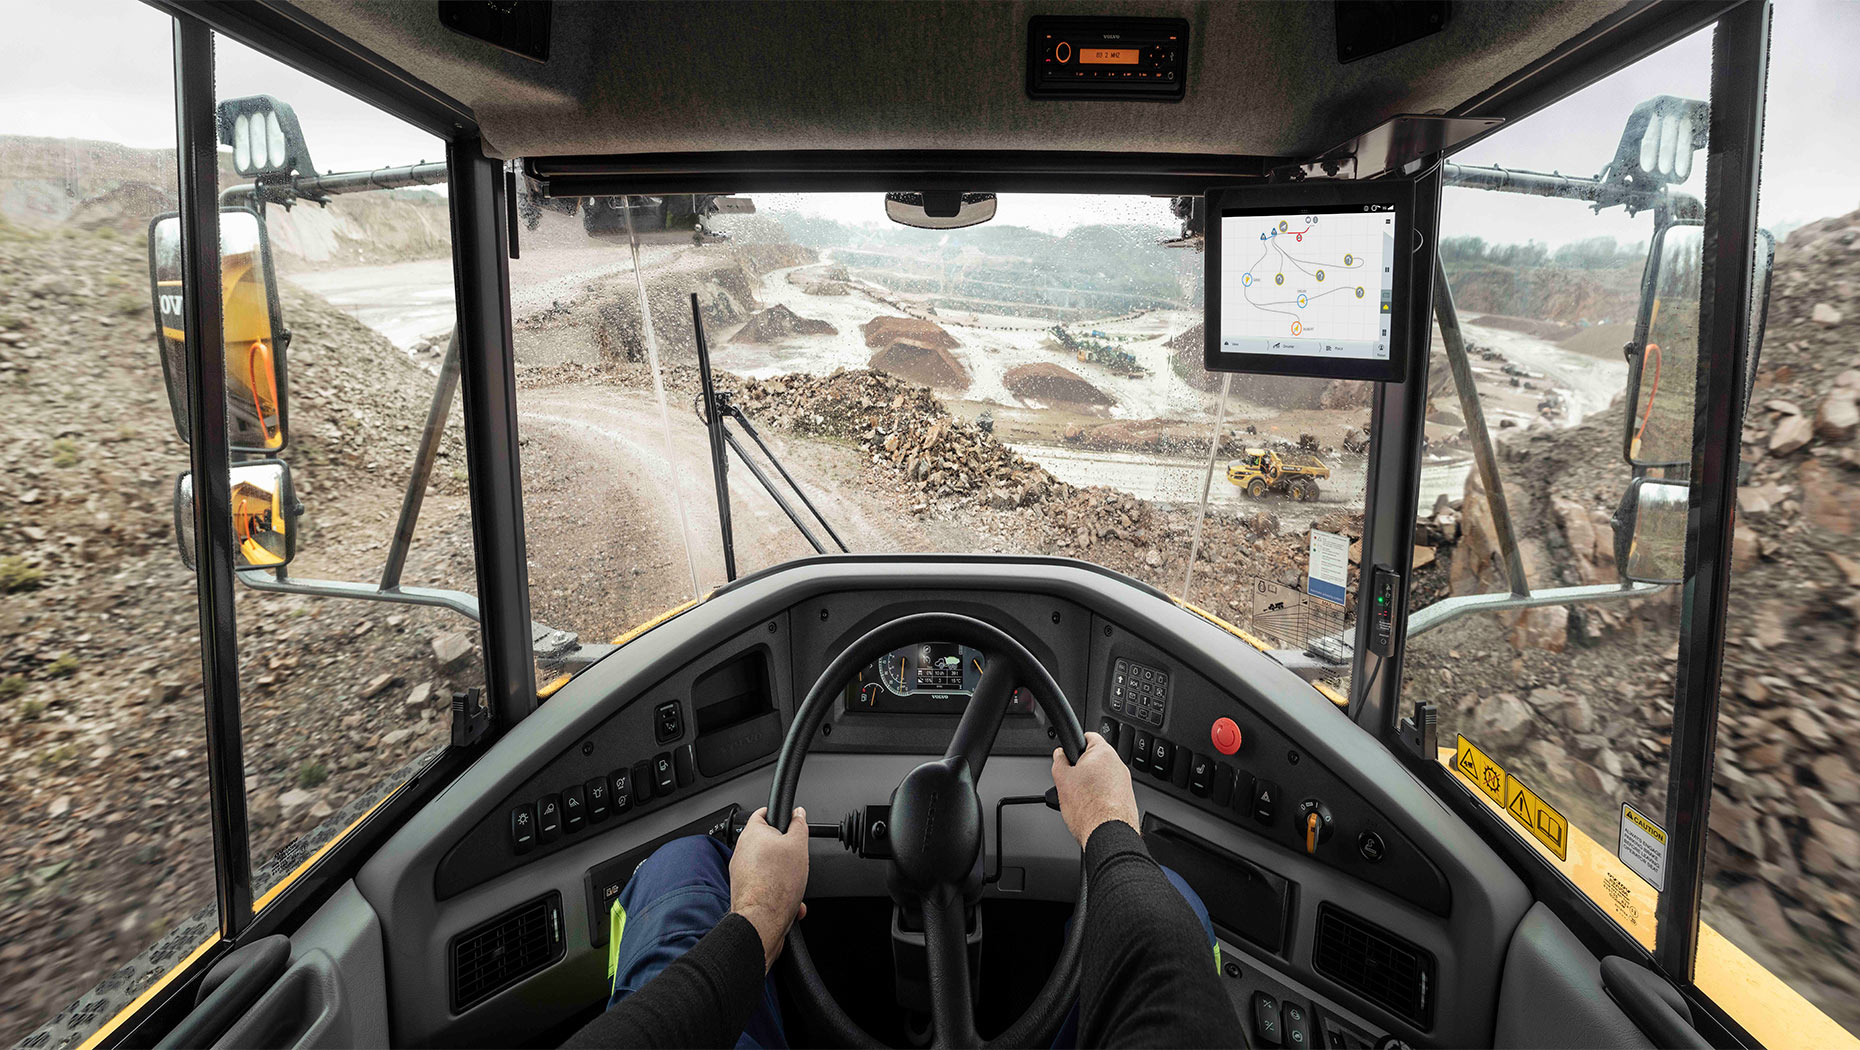 Volvo Haul Assist allows articulated haulers to communicate real-time positions to each other